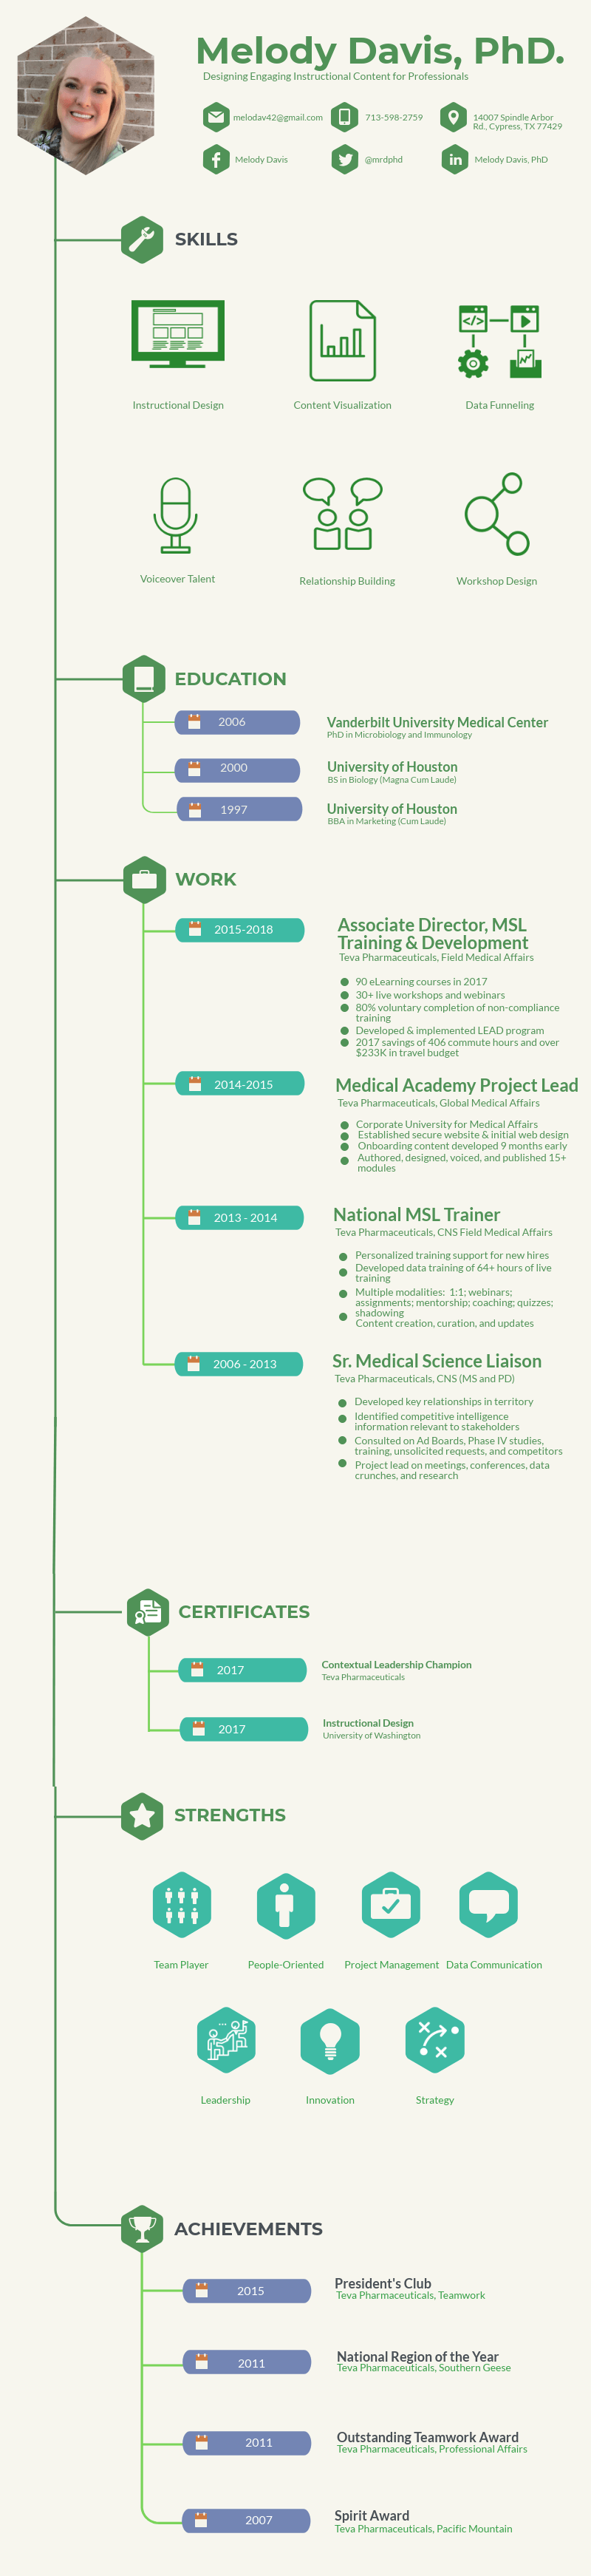 Infographic format of a resume for Melody Davis PhD